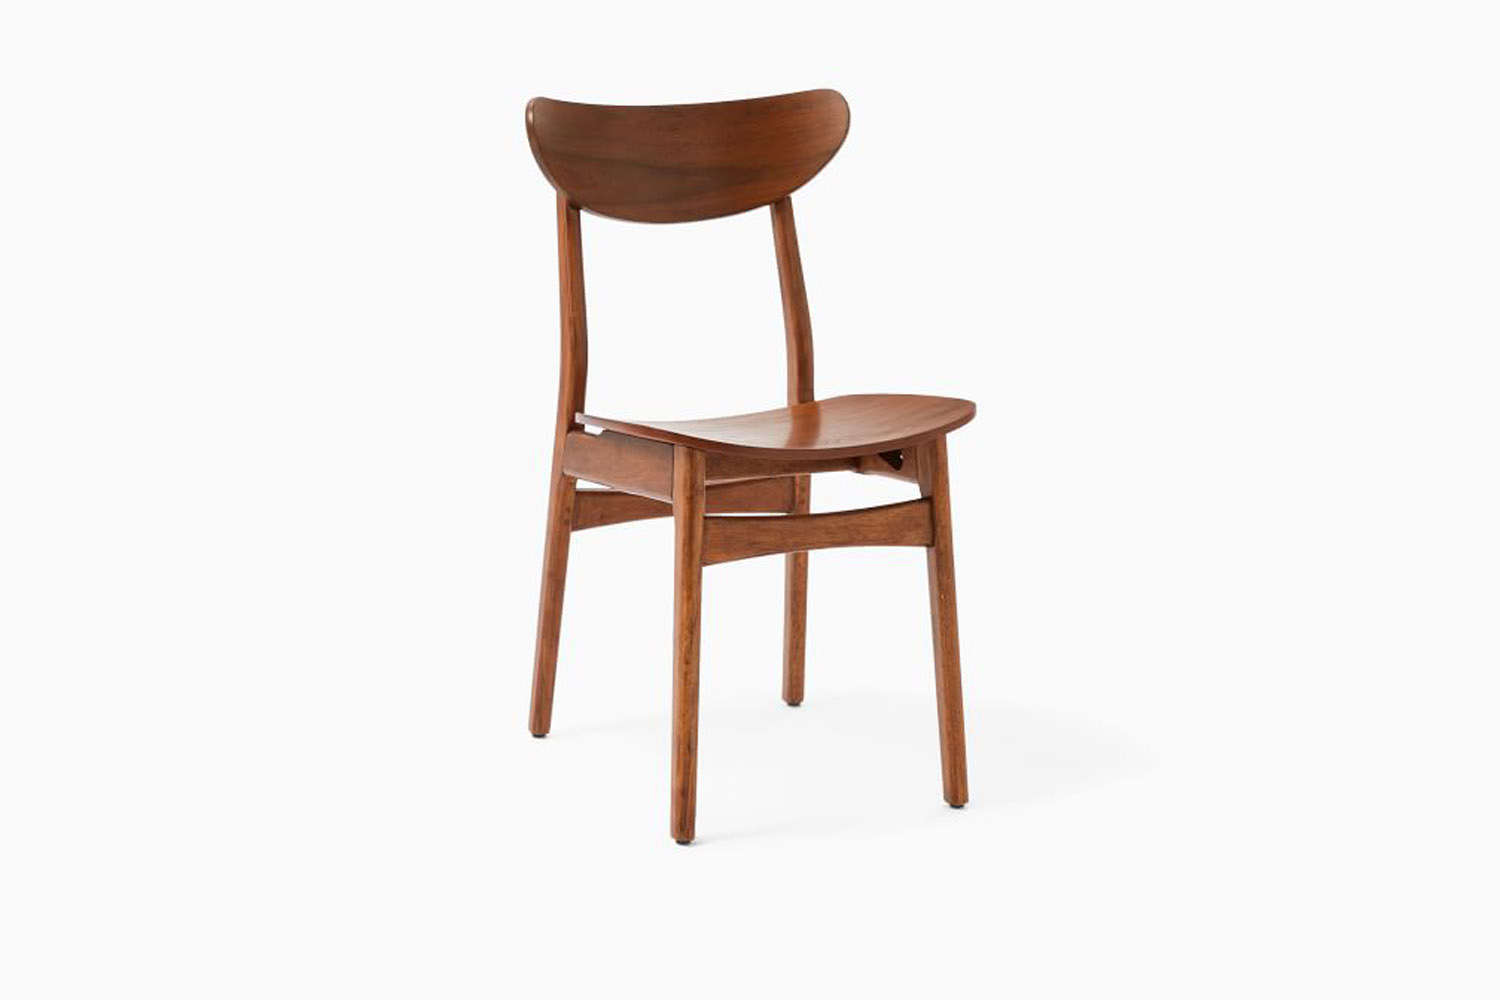 the west elm classic cafe dining chair ranges from \$99 to \$\199. 10